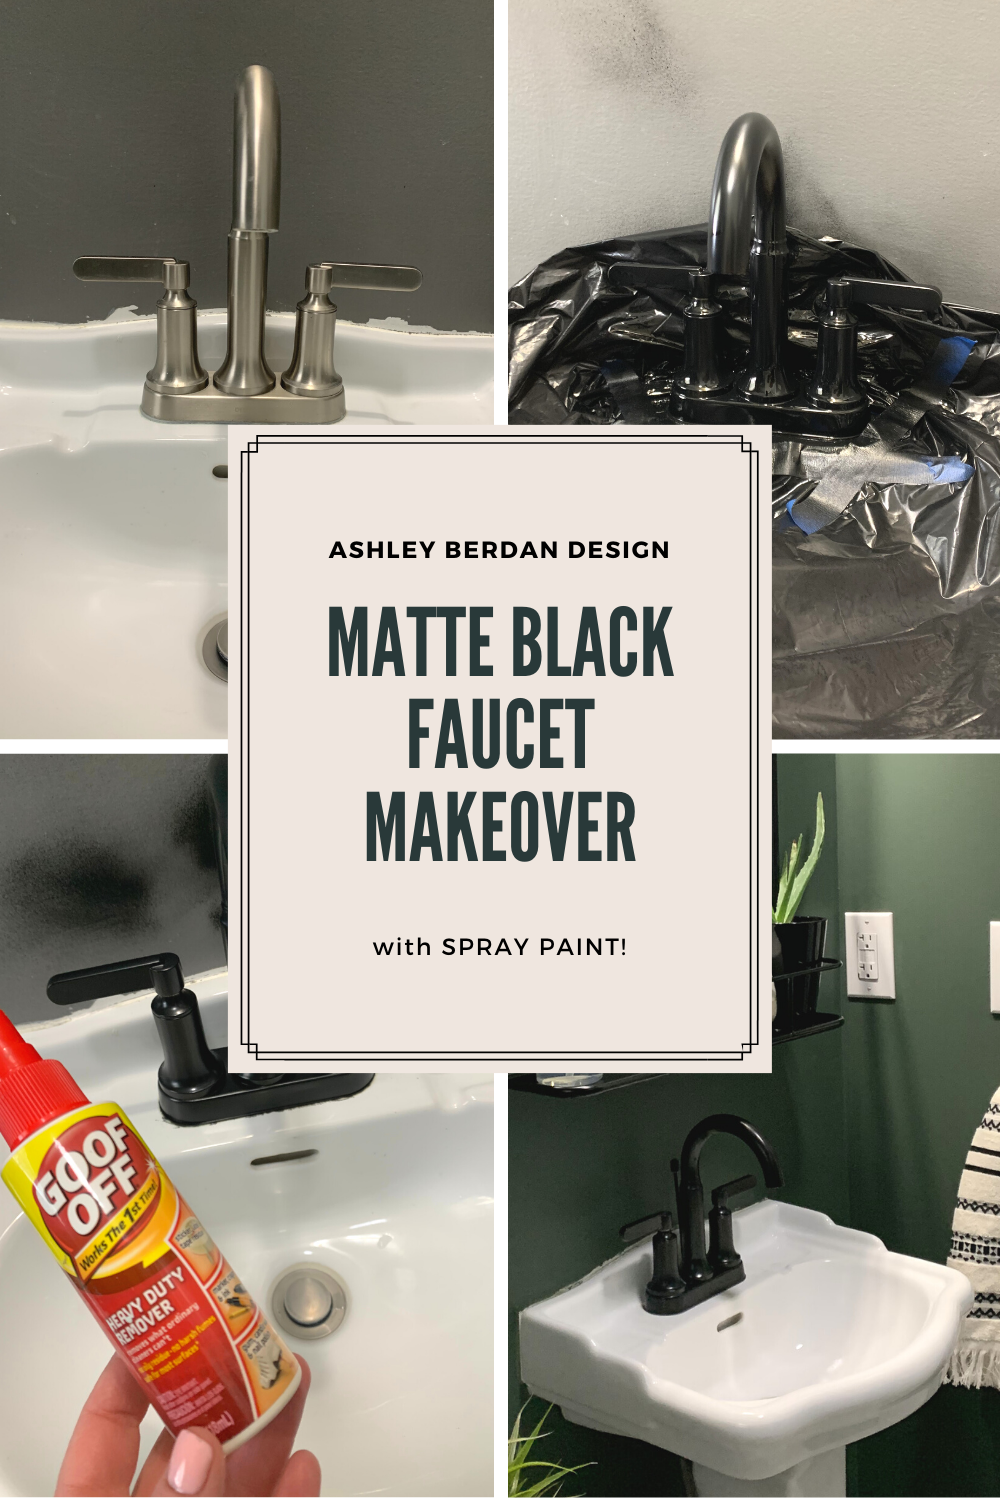 Matte Black Faucet Makeover With Spray Paint In 2020 Black Faucet Matte Black Faucet Matte Black Spray Paint